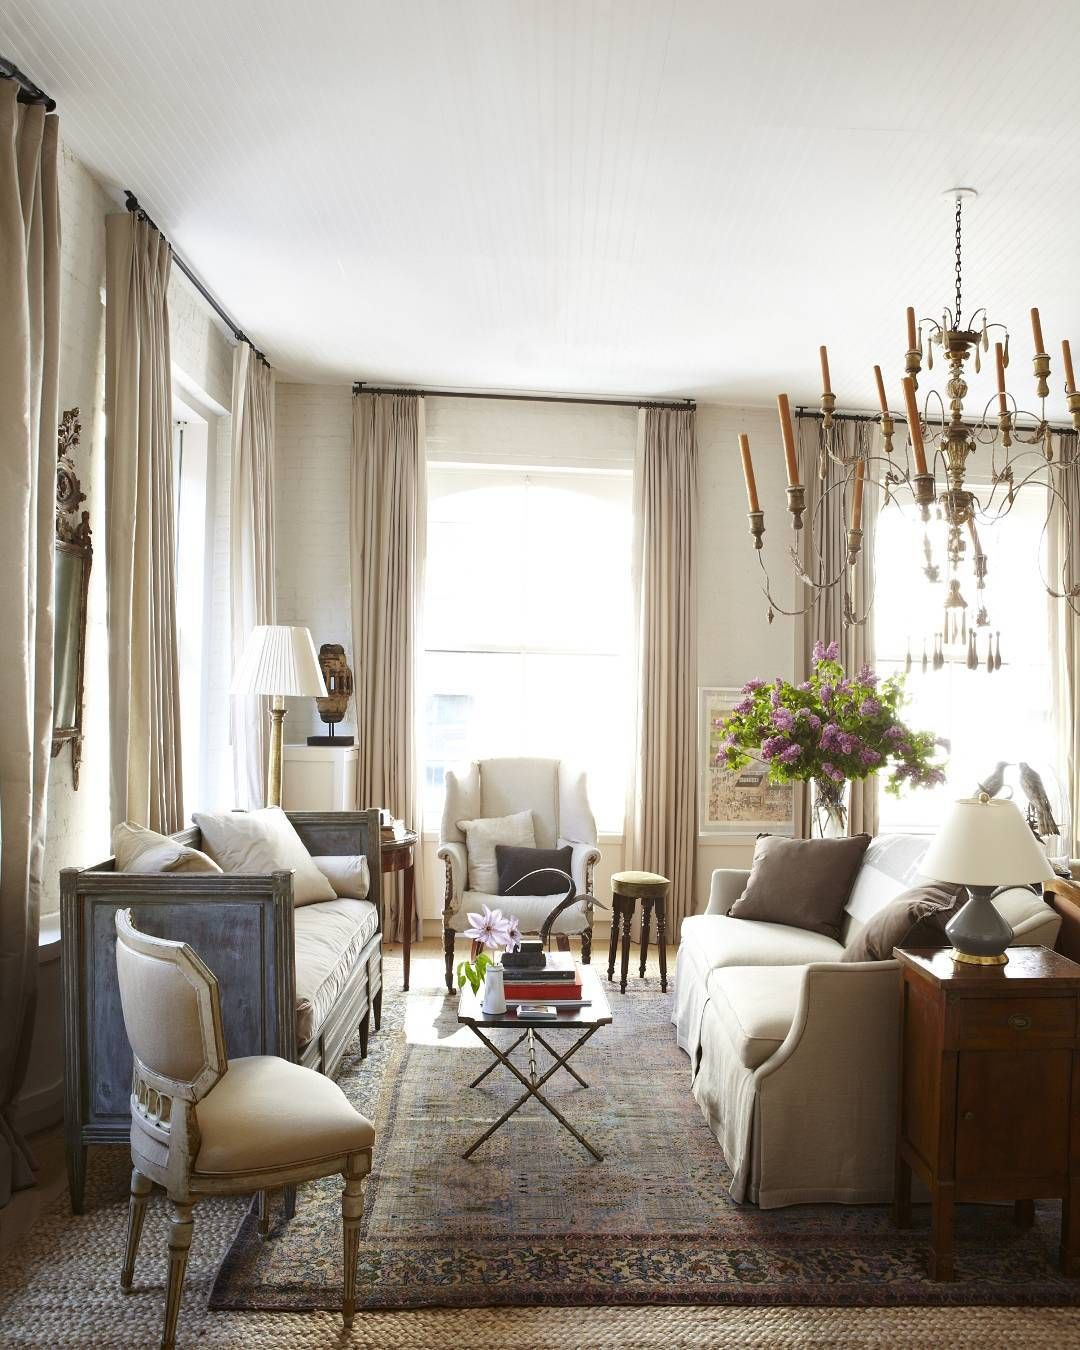 I want to swing from the chandelier photo wabranowicz design